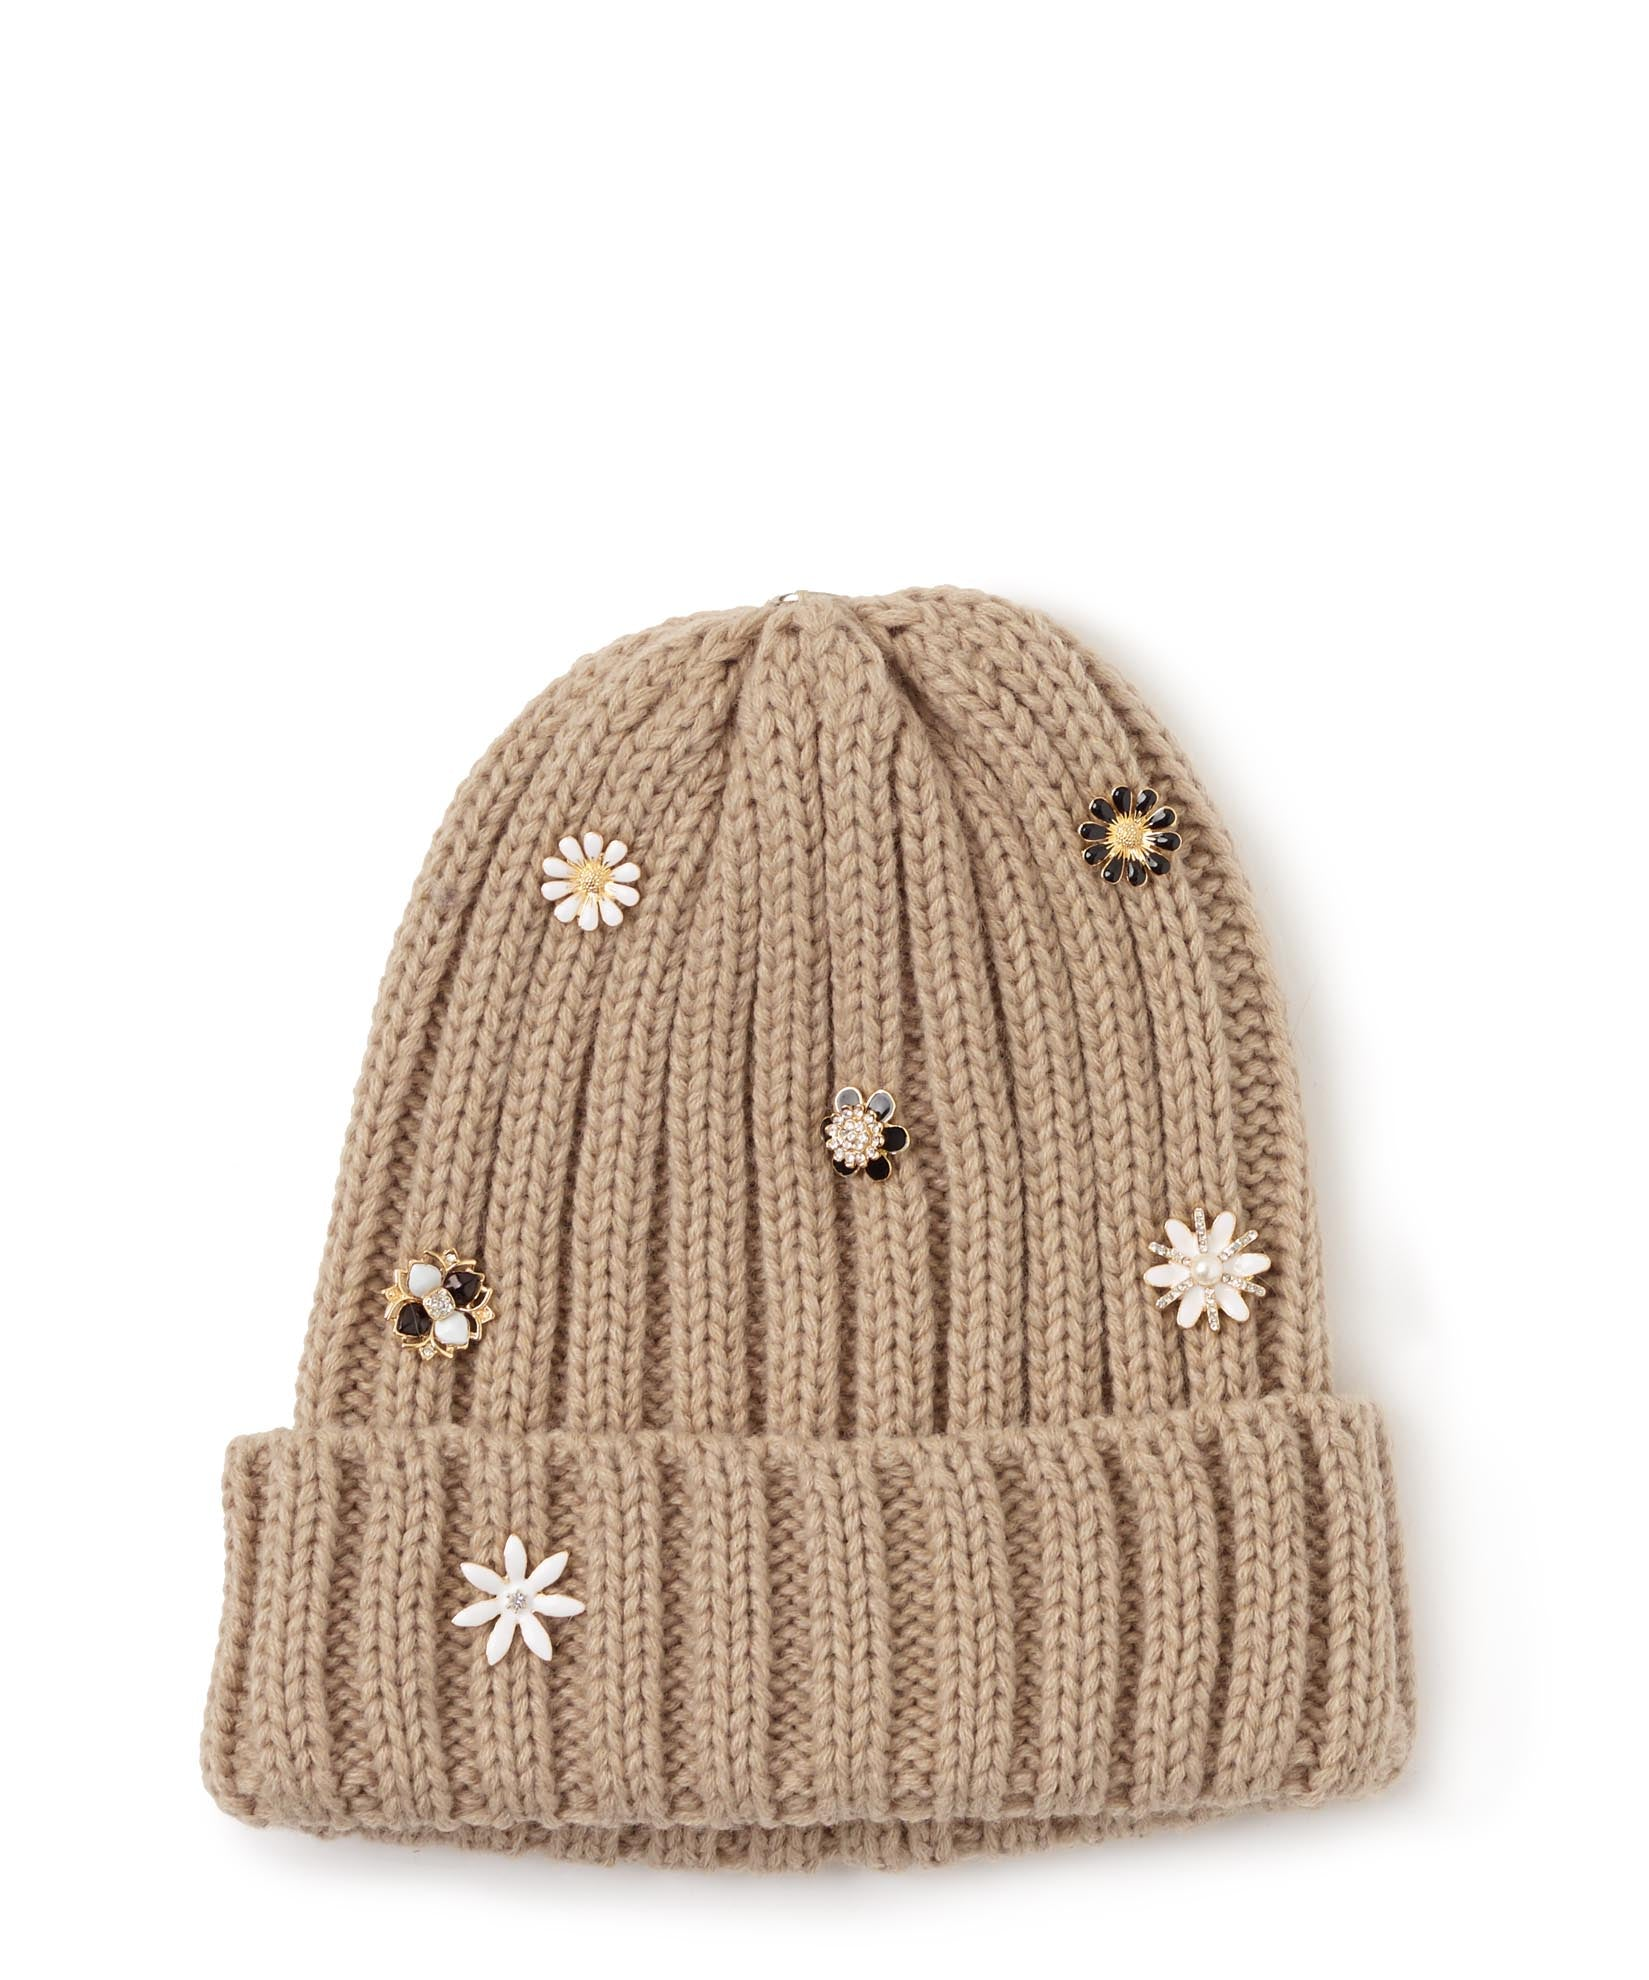 Oatmeal - Ribbed Knit Changeable Pom Beanie